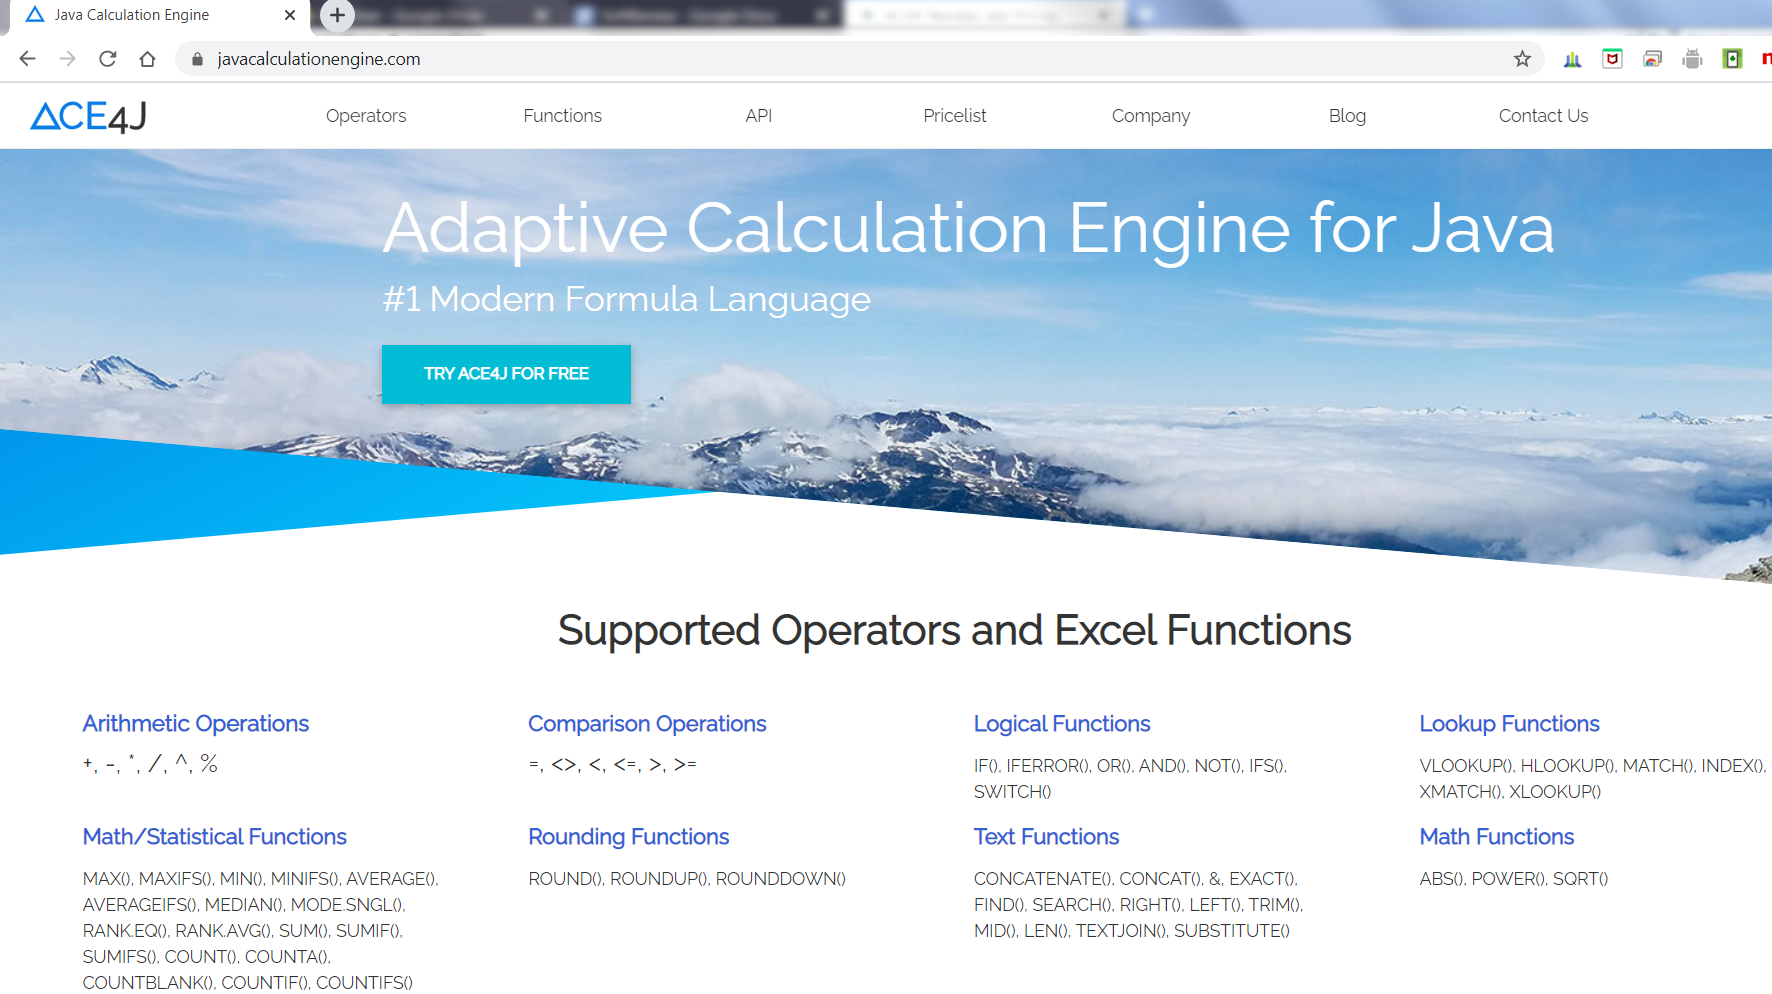 ACE4J supports 60+ Excel operators and functions including all latest functions such as XLOOKUP, XMATCH, SWITCH etc.